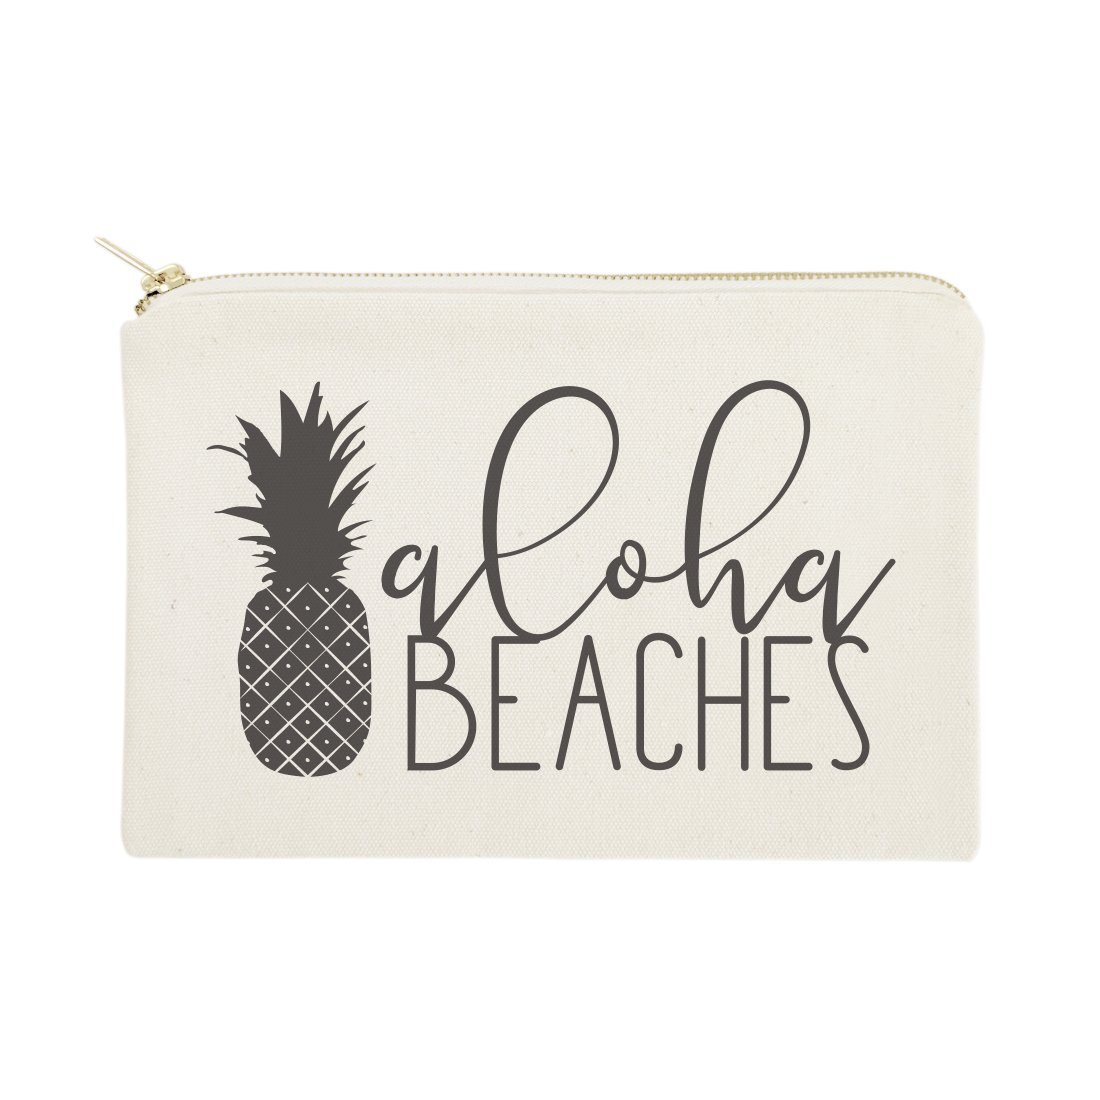 The Cotton & Canvas Co. Aloha Beaches Beach Cosmetic Bag and Travel Make Up Pouch